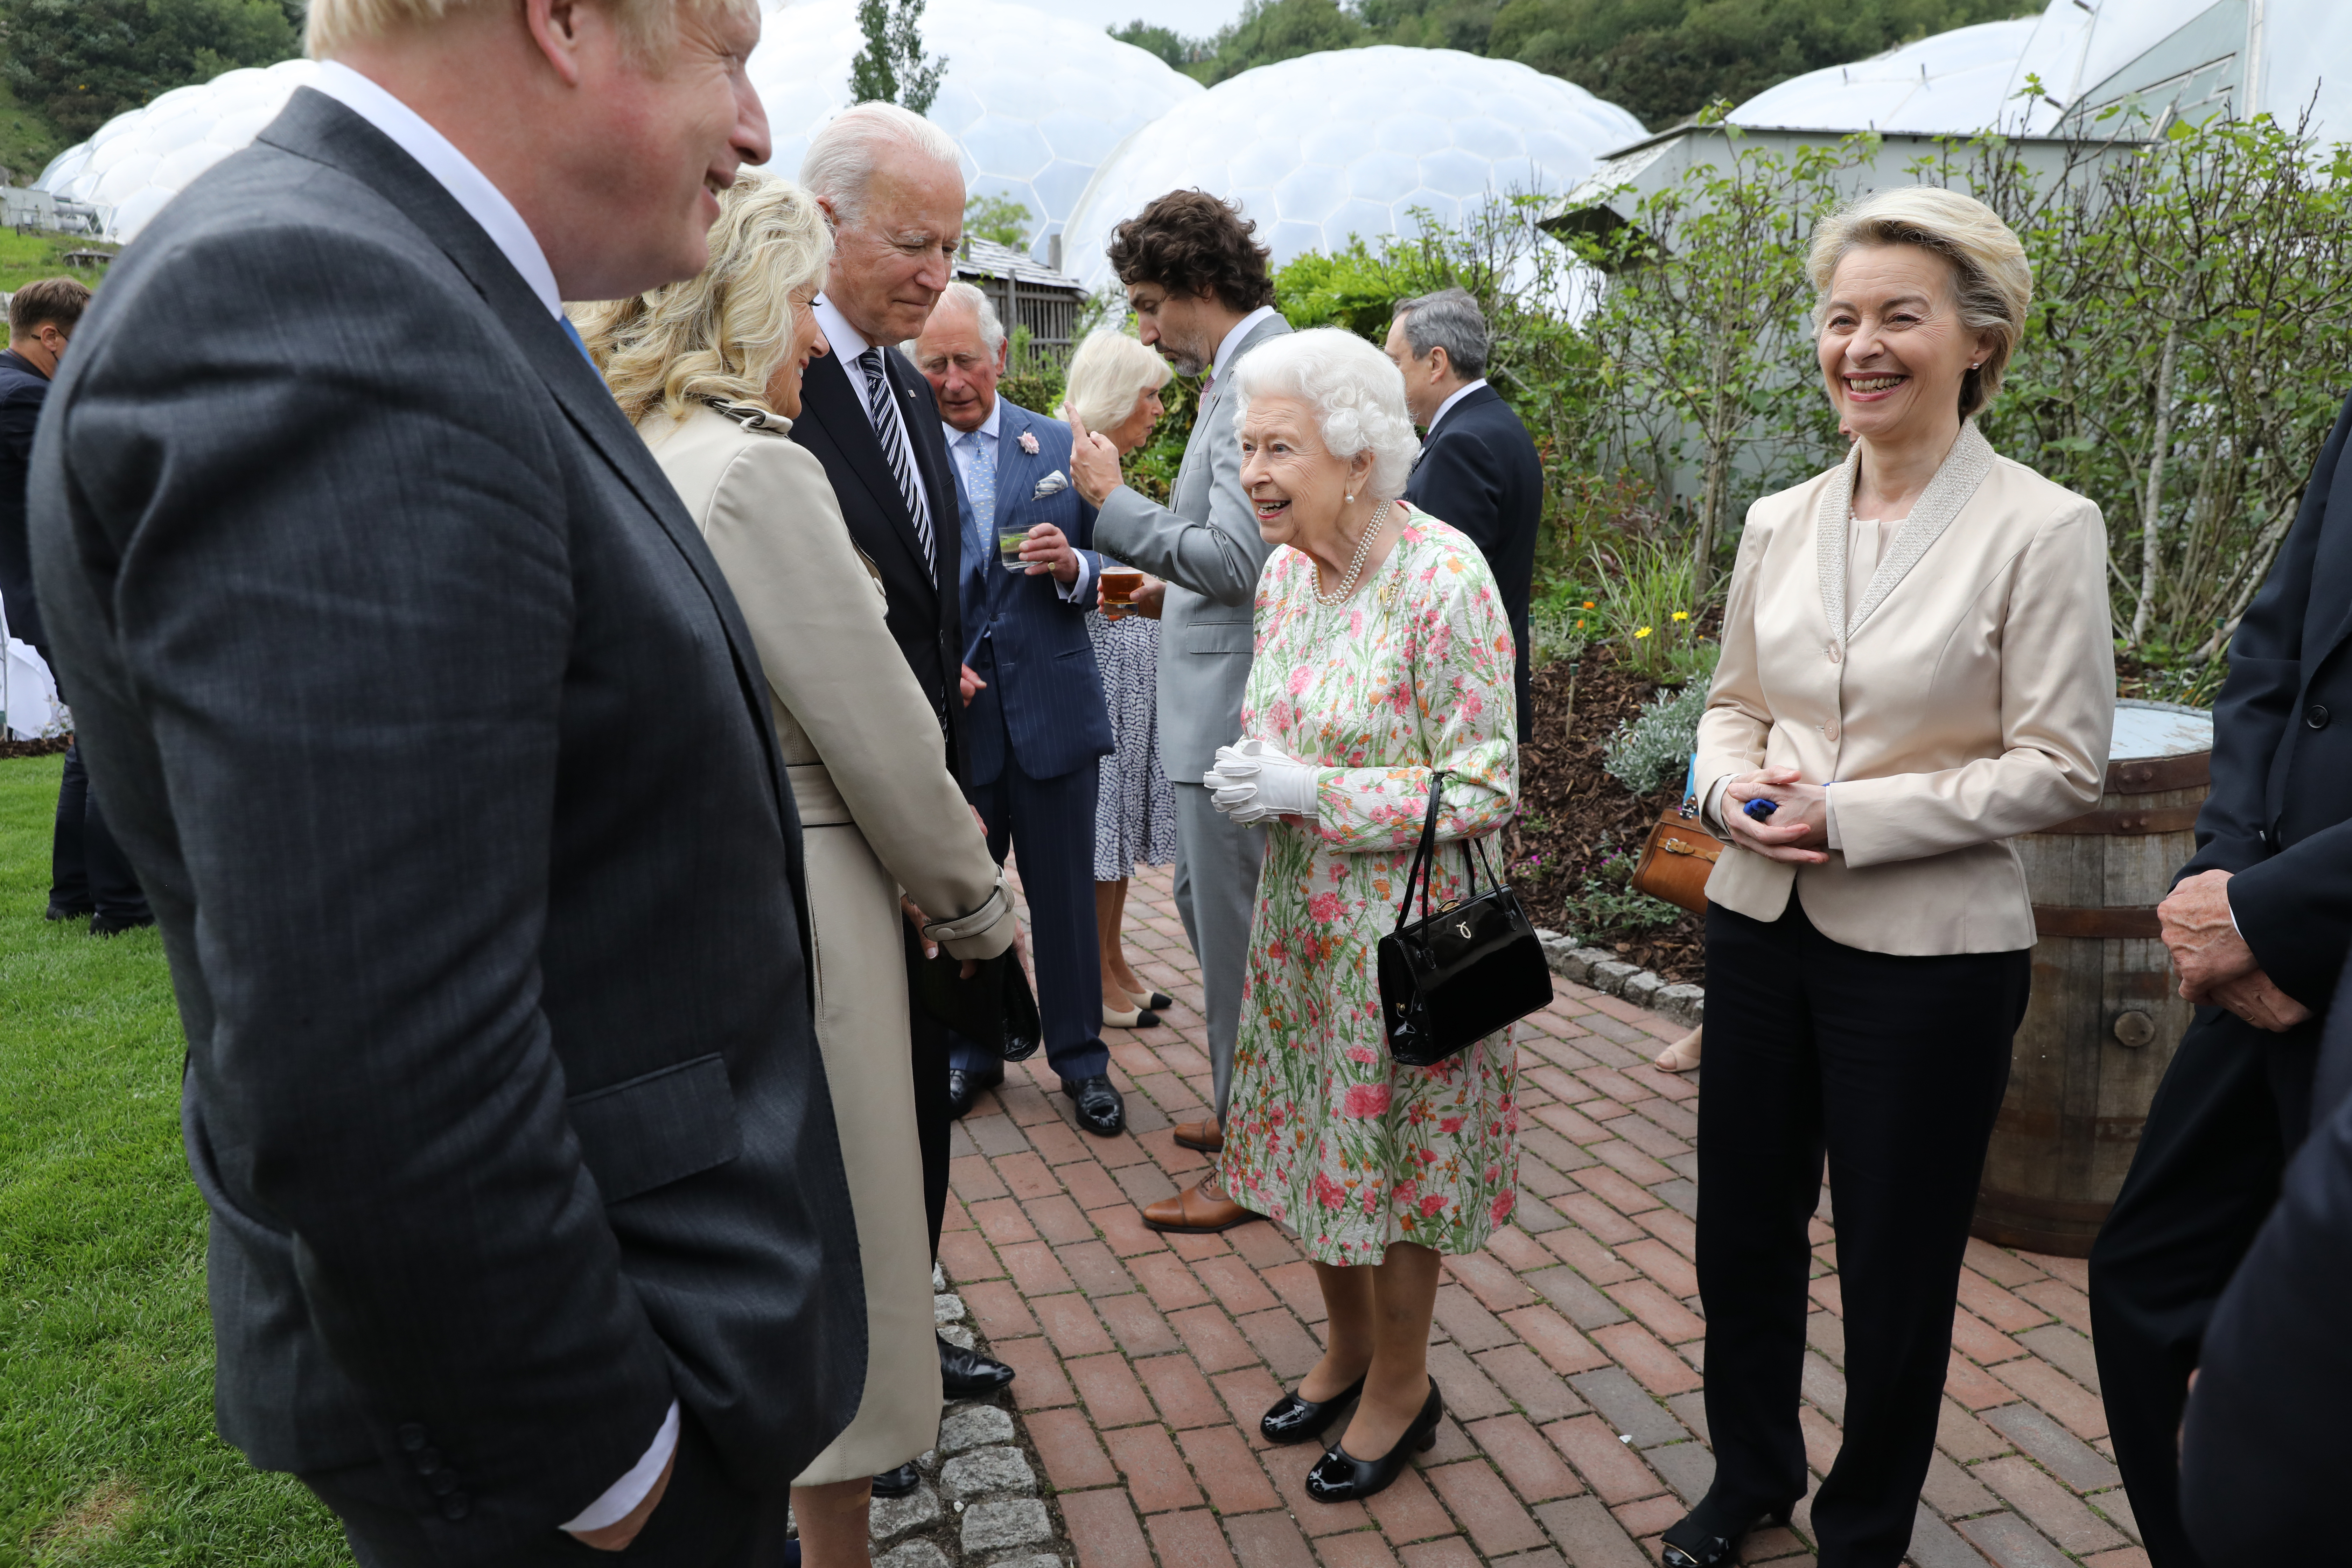 Her Majesty welcomes world leaders at The Eden Project